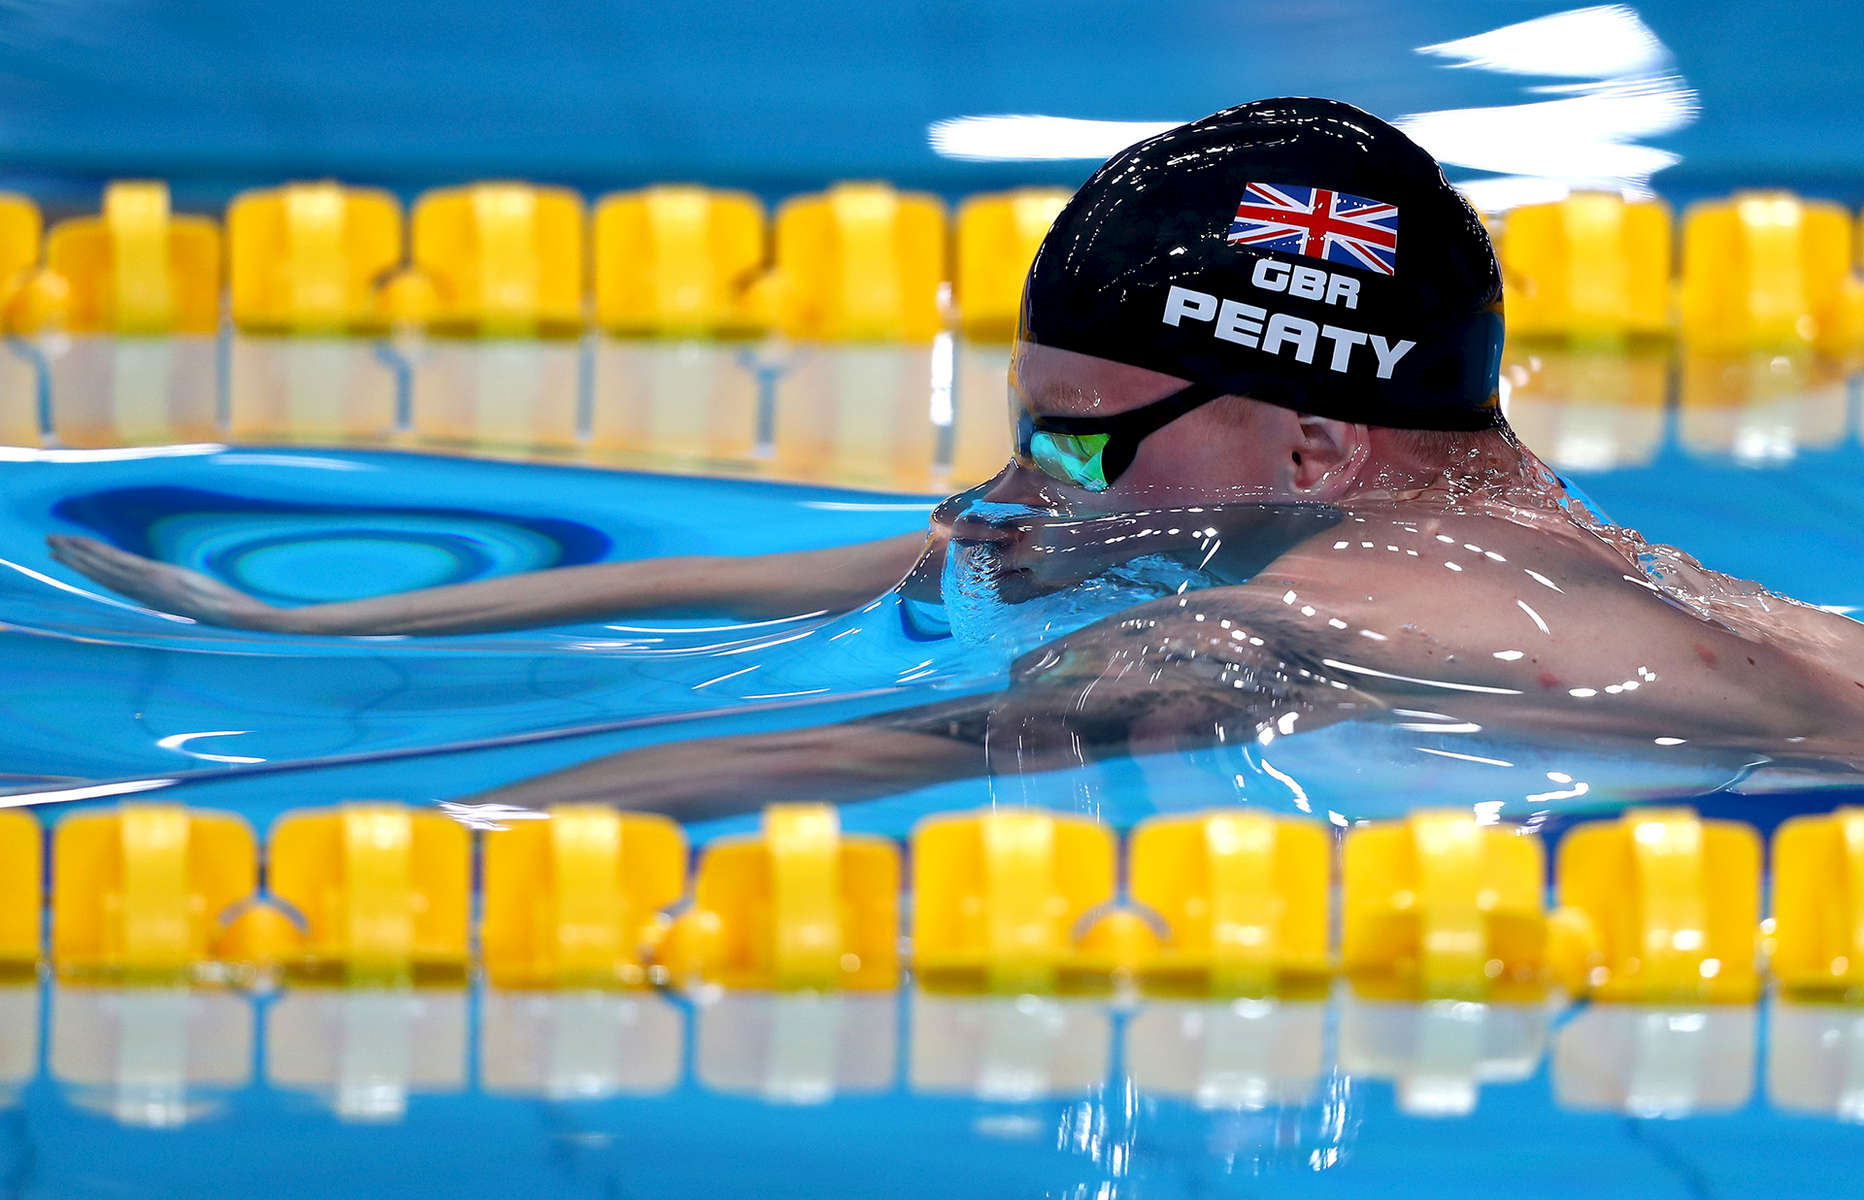 Adam Peaty of Great Britain competes during the Men's 100m Breaststroke Semi-finals on day ten of the Budapest 2017 FINA World Championships on July 23, 2017 in Budapest, Hungary